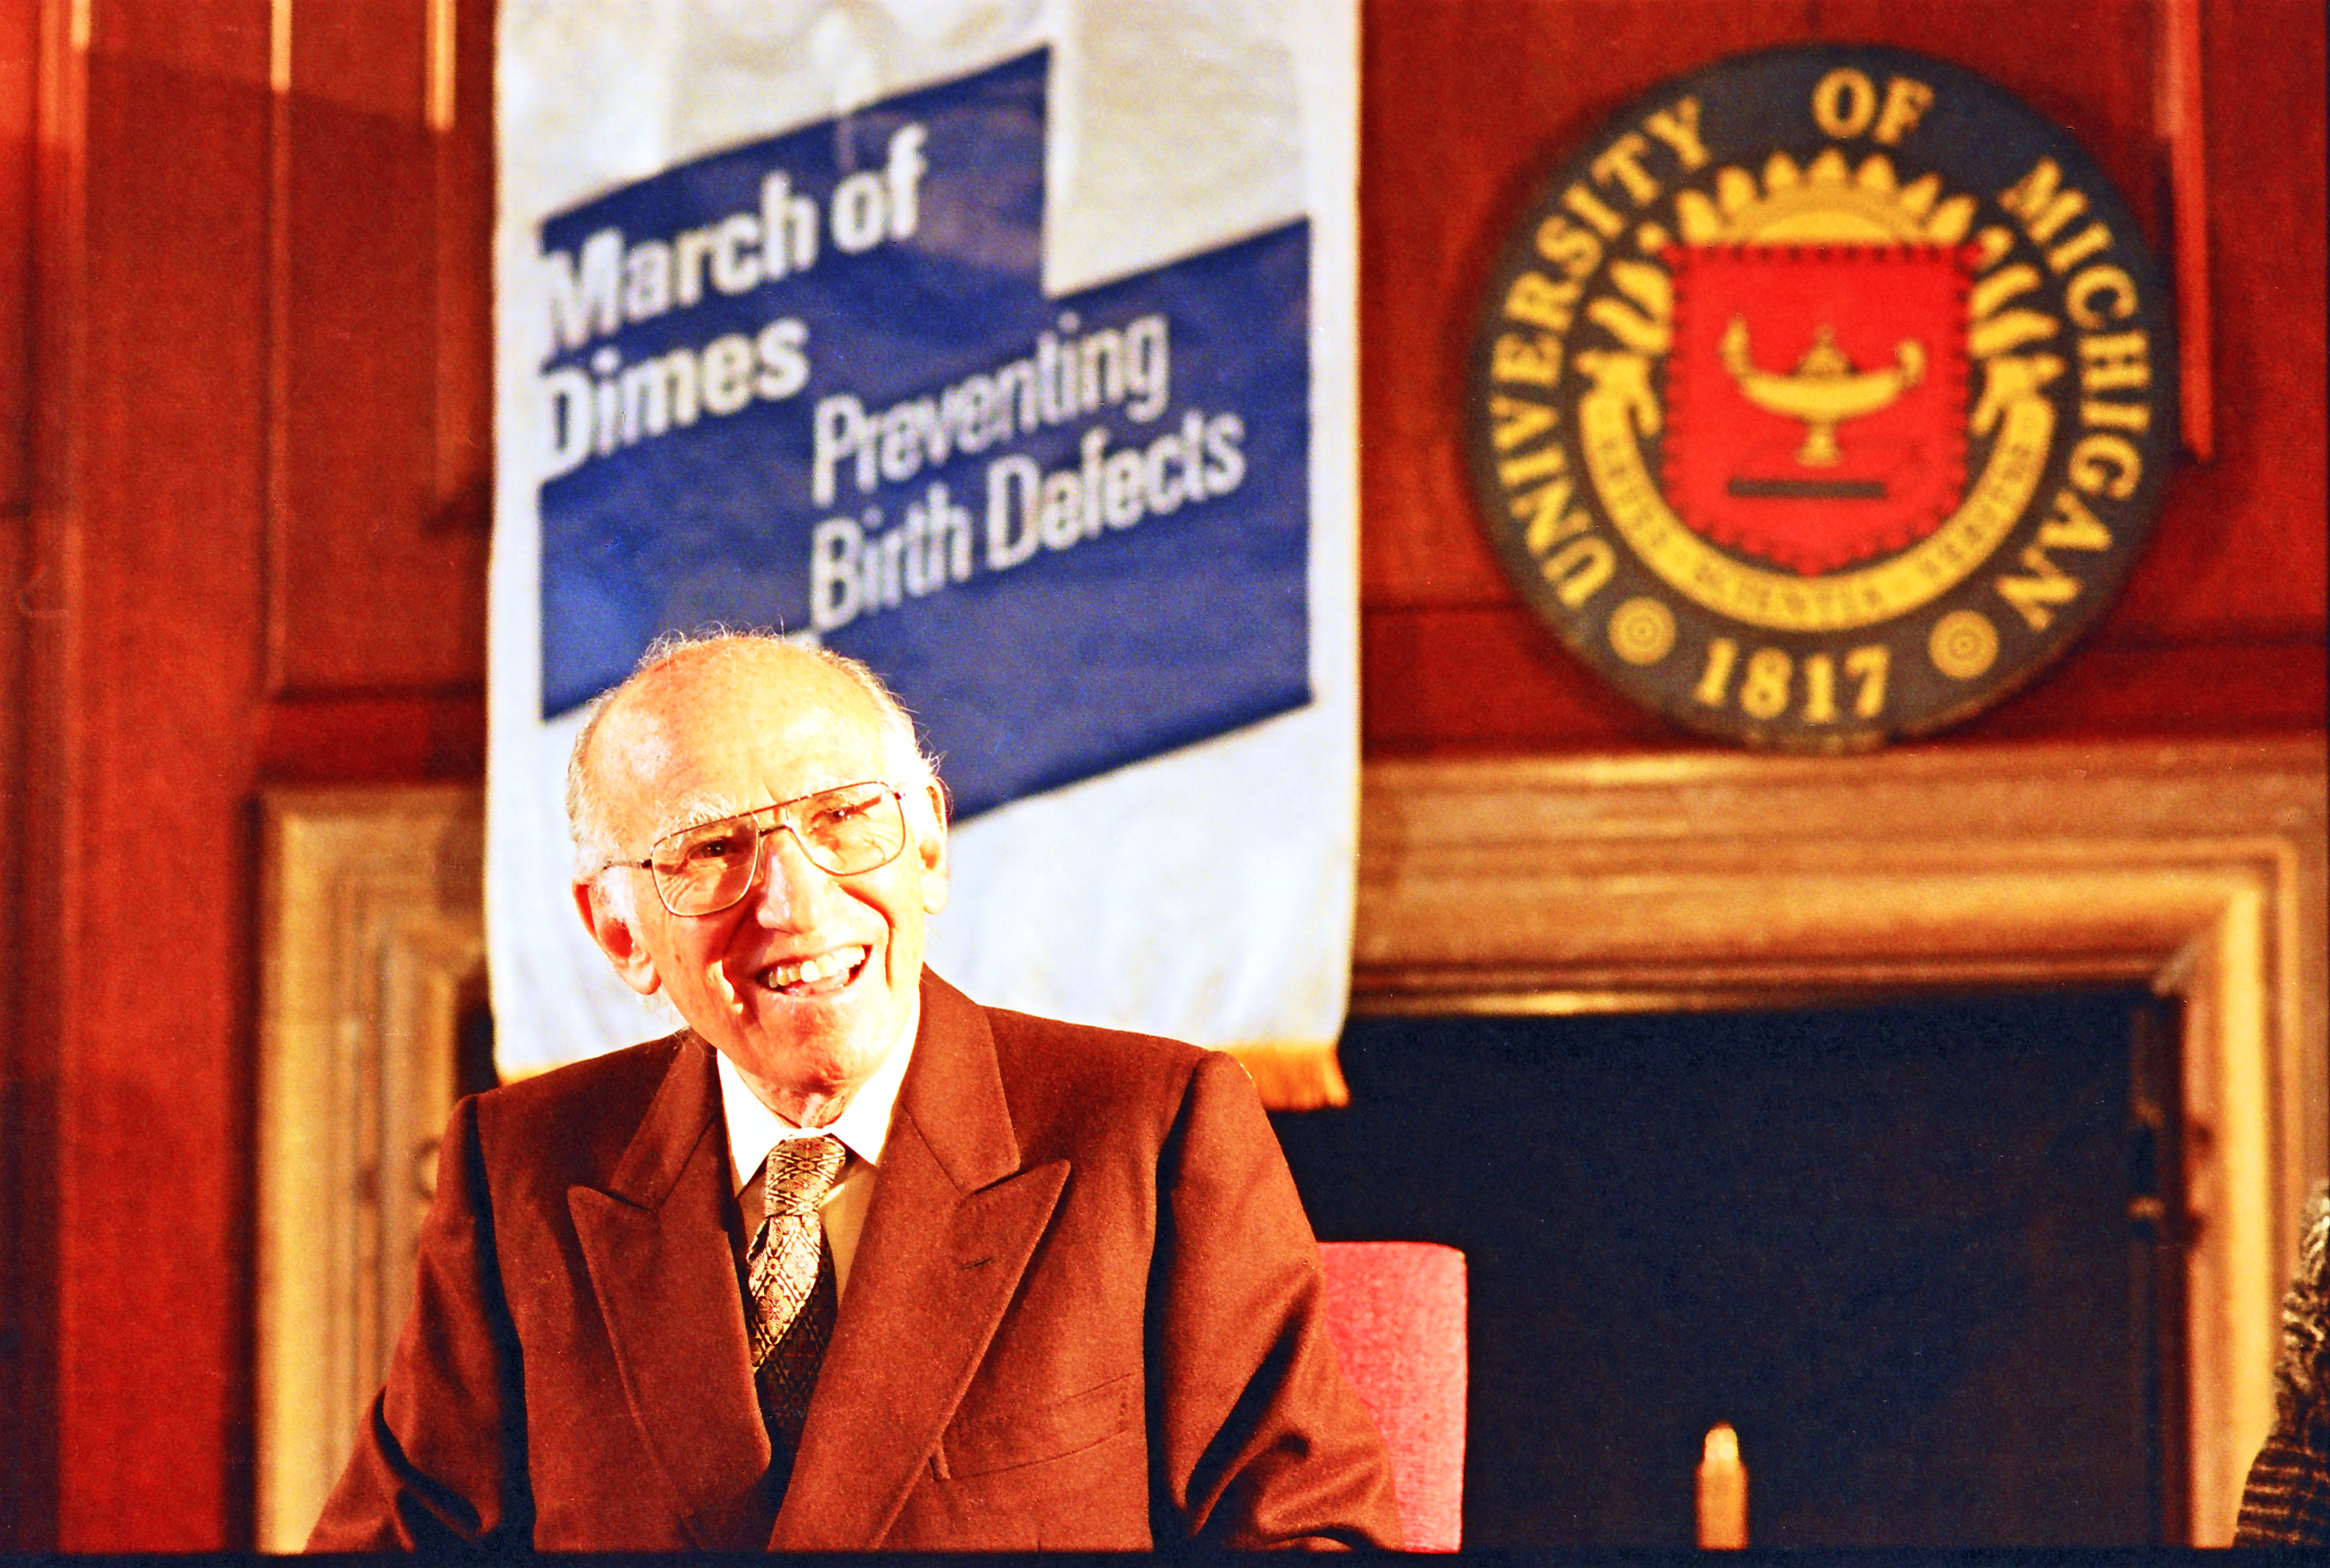 Dr. Jonas E. Salk meets with news media after his speech in Rackham Auditorium, August 12, 1995 image